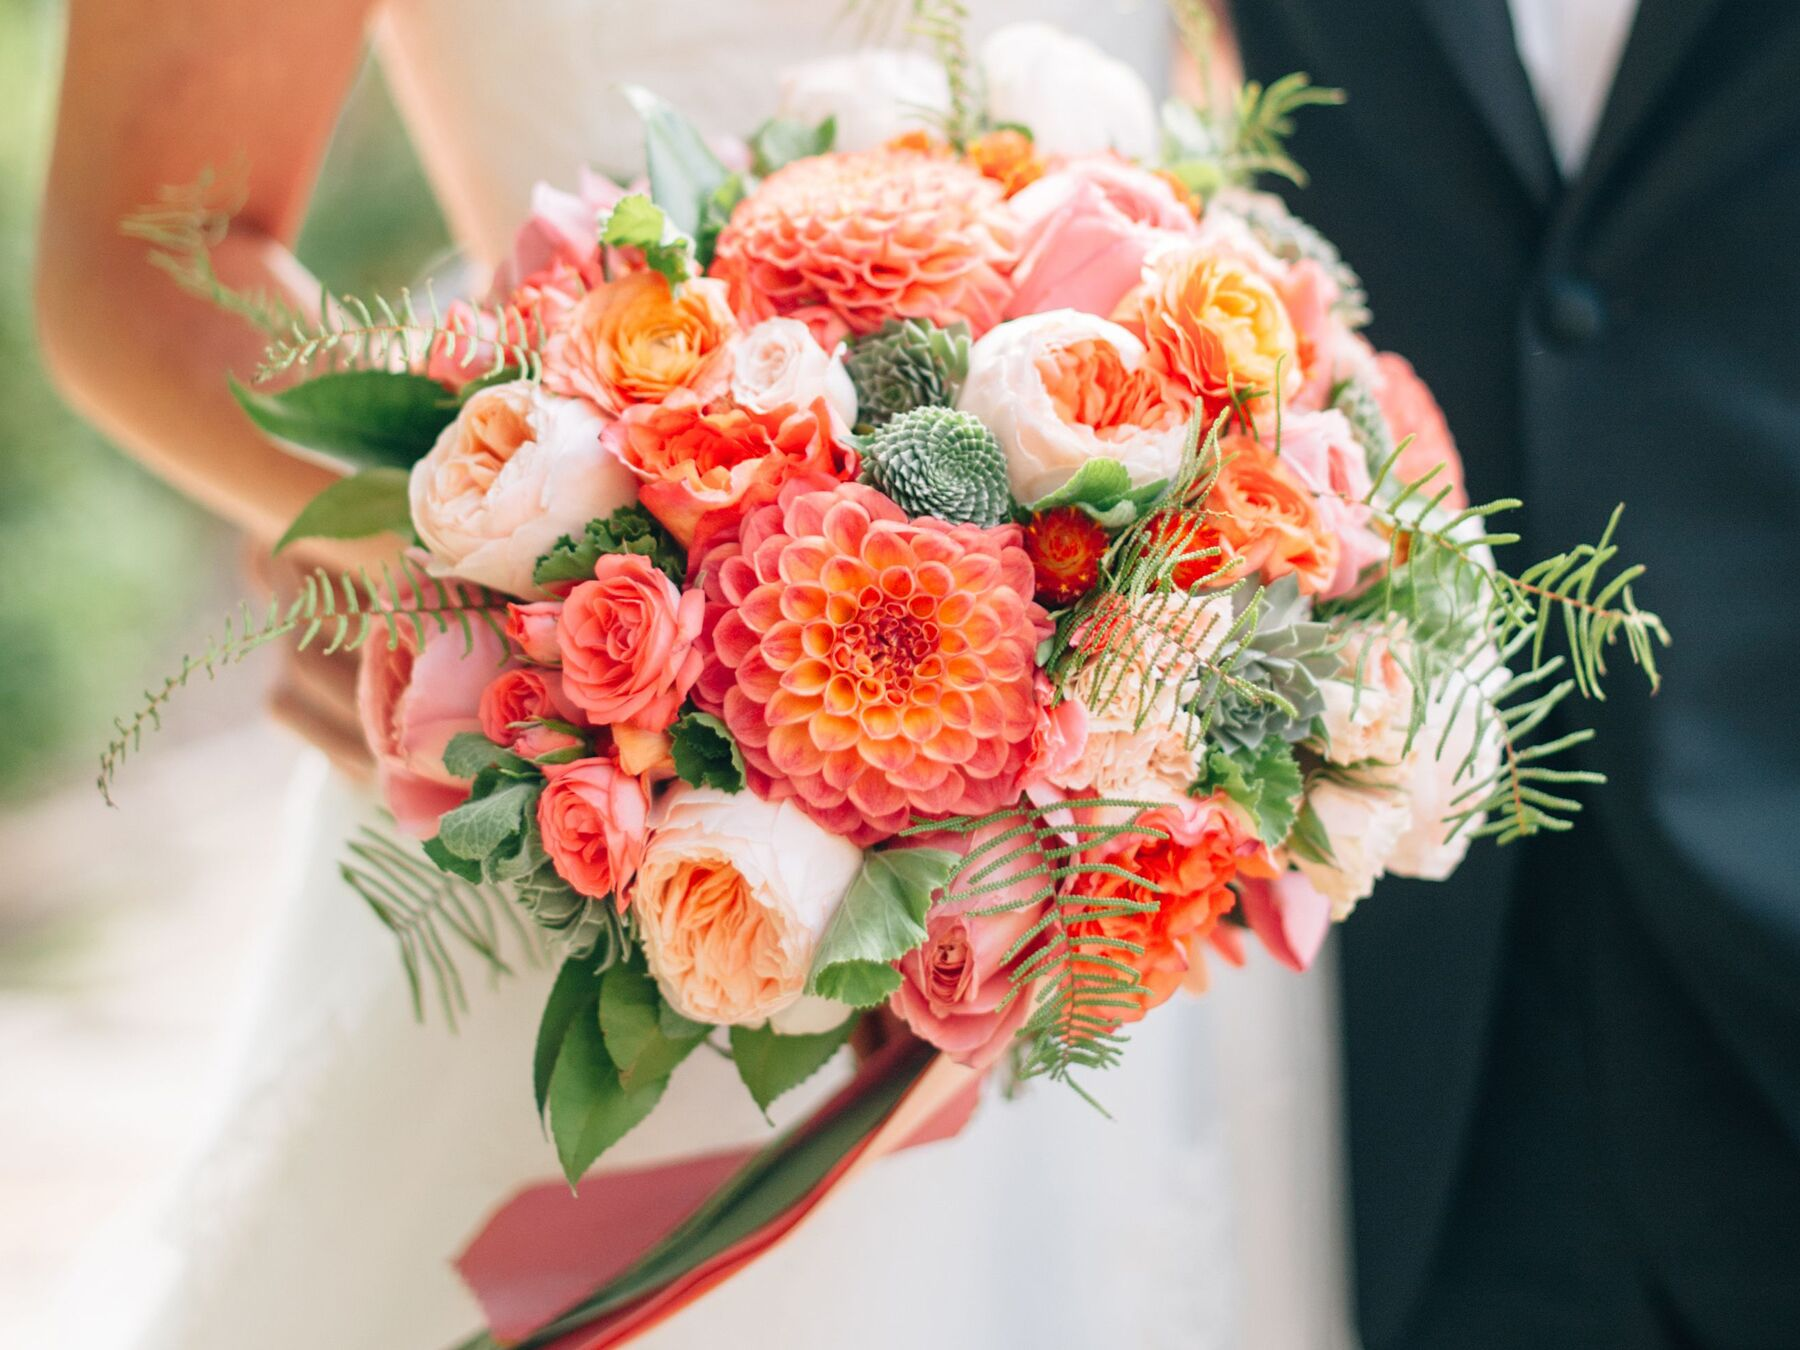 Wedding Flower Guide With Season Color And Price Details